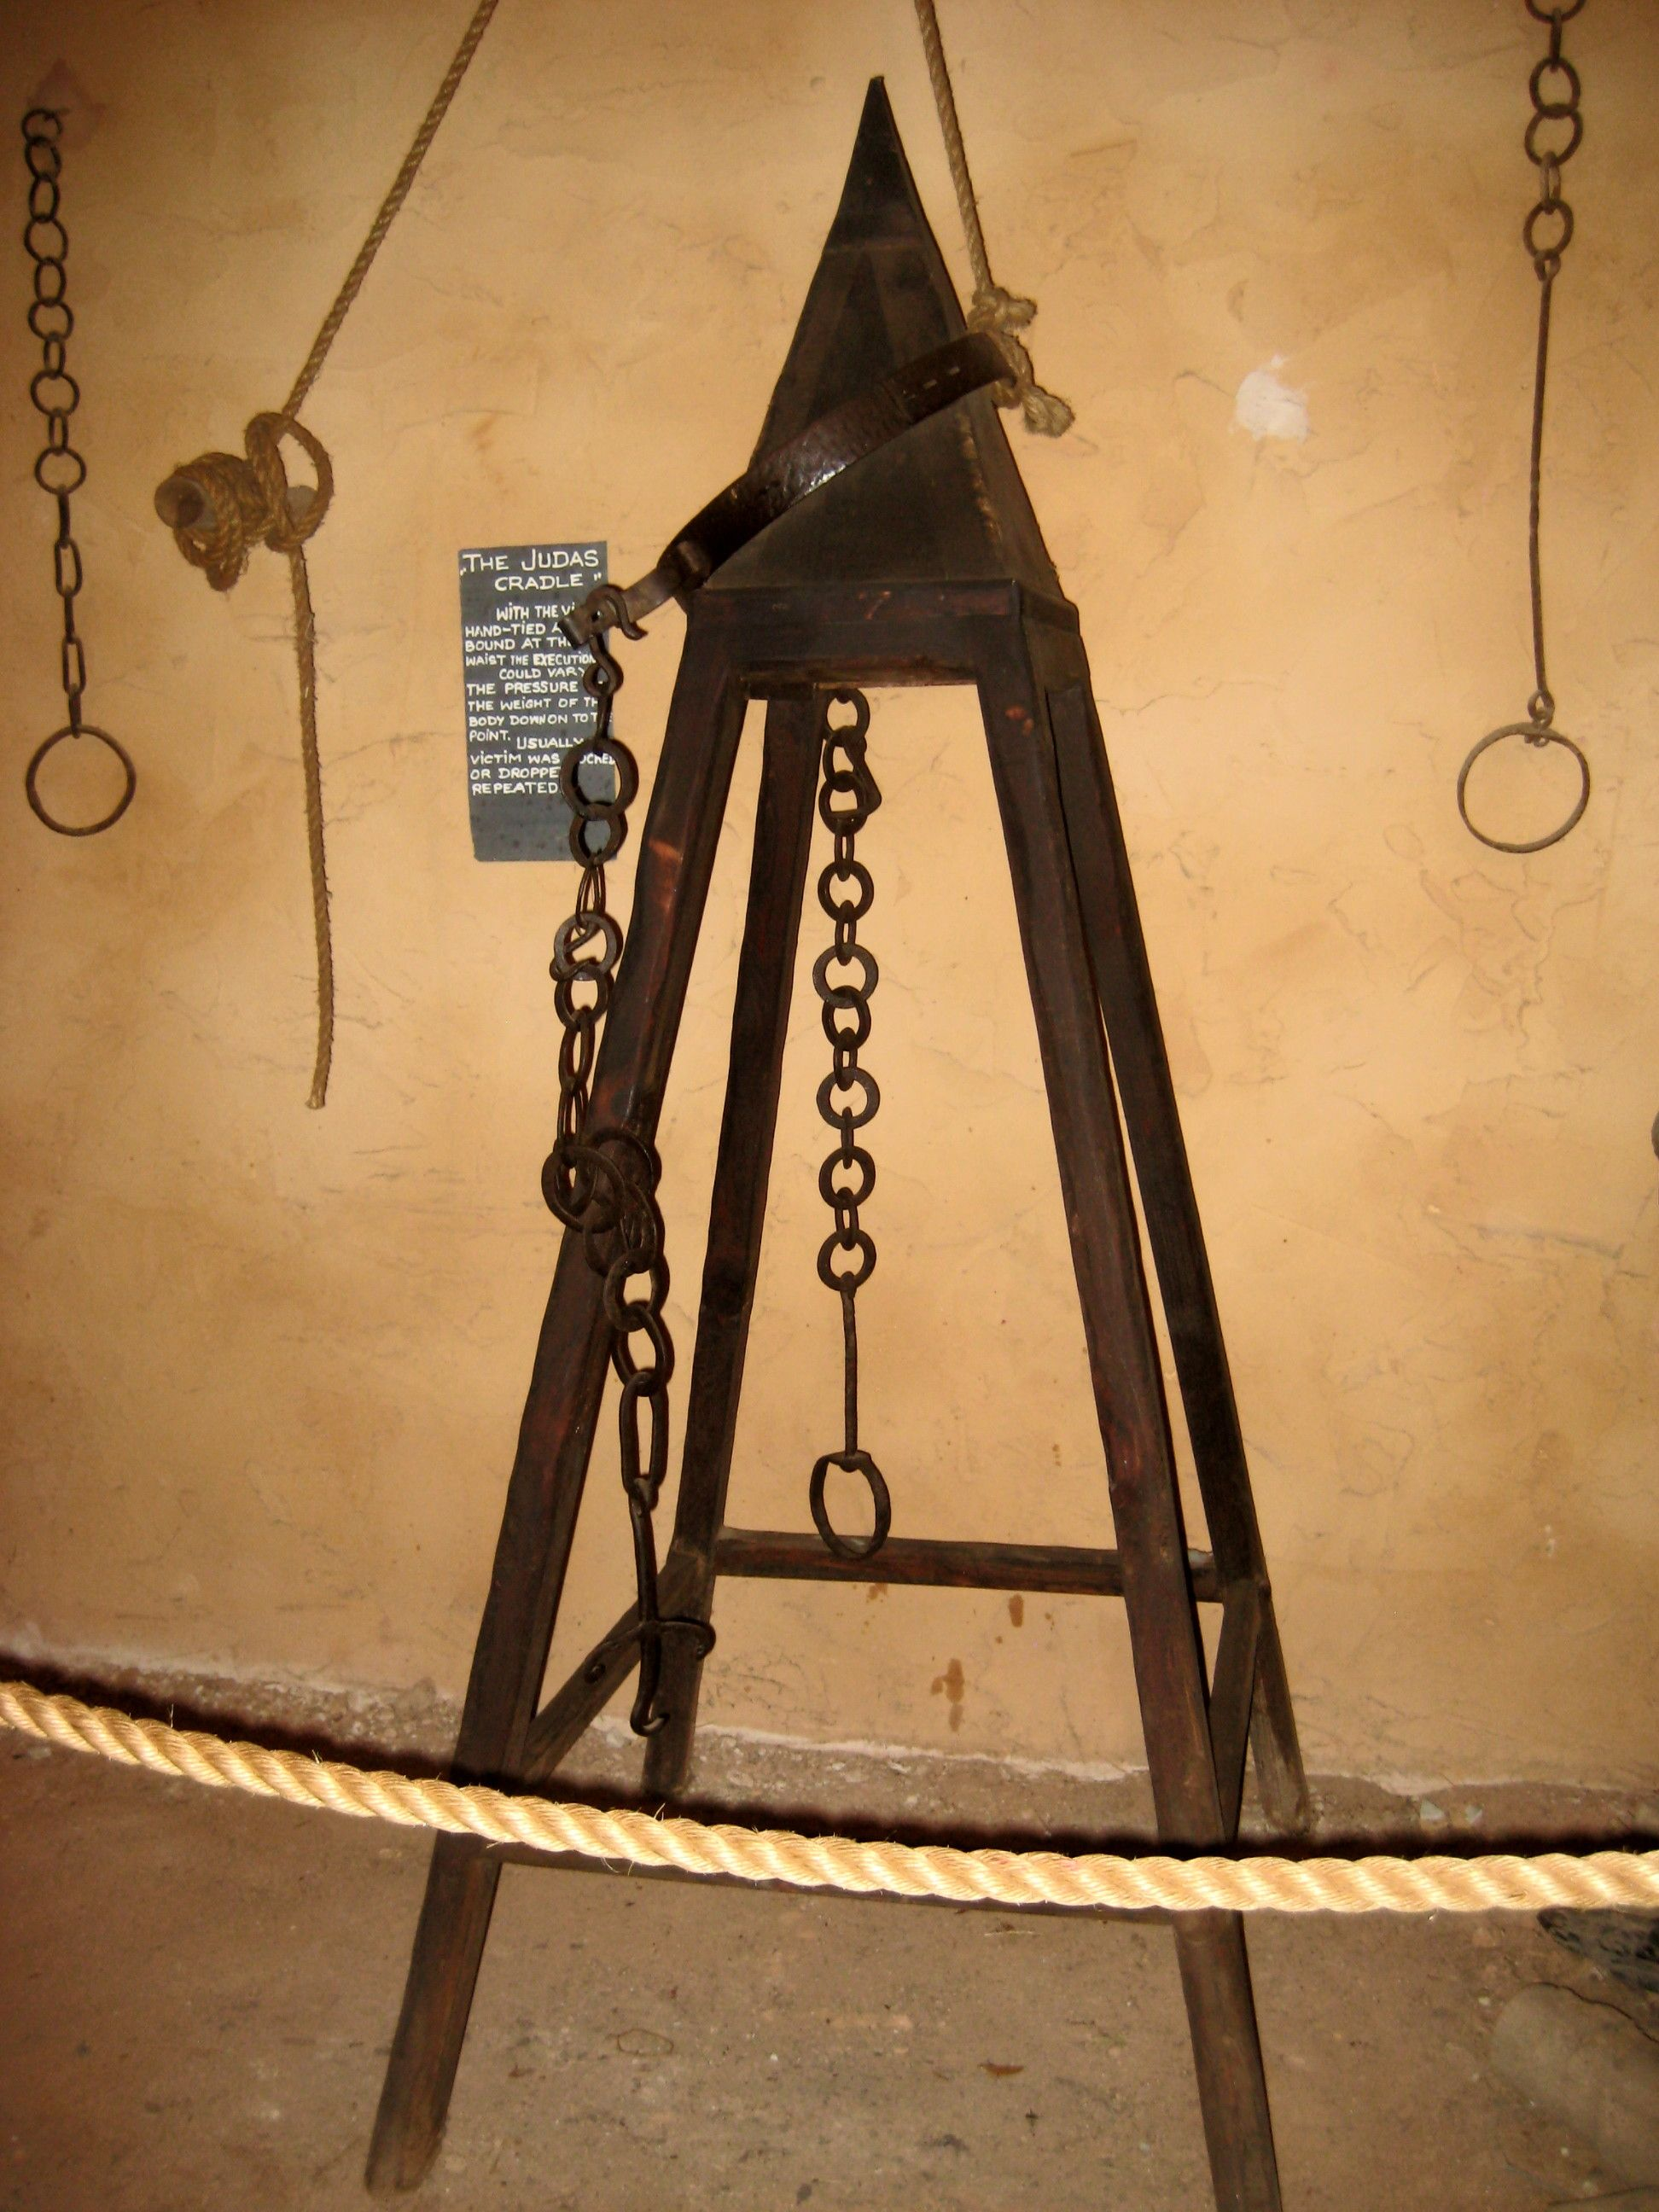 Essay On Chinese Culture Judas Cradle  The Spanish Inquisition Was Known For Its Many Torture  Devices And The Judas Cradle Was One Of The Most Painful The Victim Would  Presumably  Sample Interview Essays also Pharmacy Essays Judas Cradle  The Spanish Inquisition Was Known For Its    Top  Best Essay Format